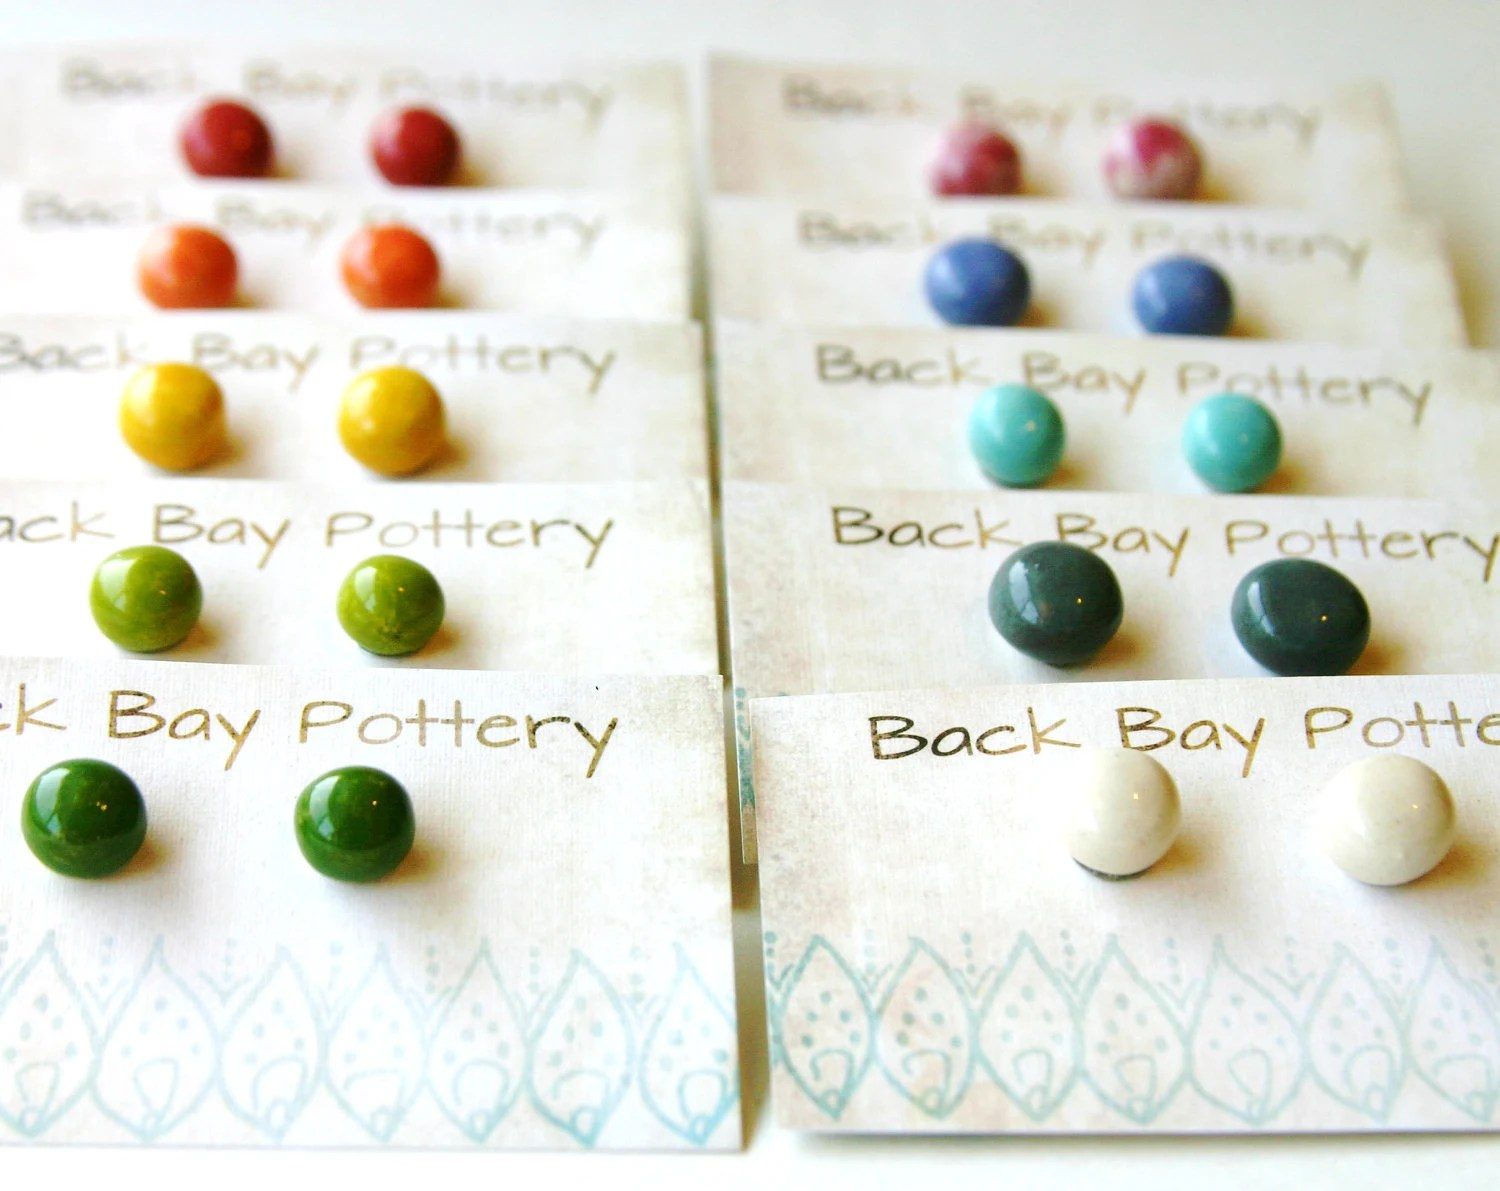 Simple Ceramic Stud Earrings - Set of 2 - Choose Your Colors - 32 Colorful Choices - Ready to Ship - BackBayPottery